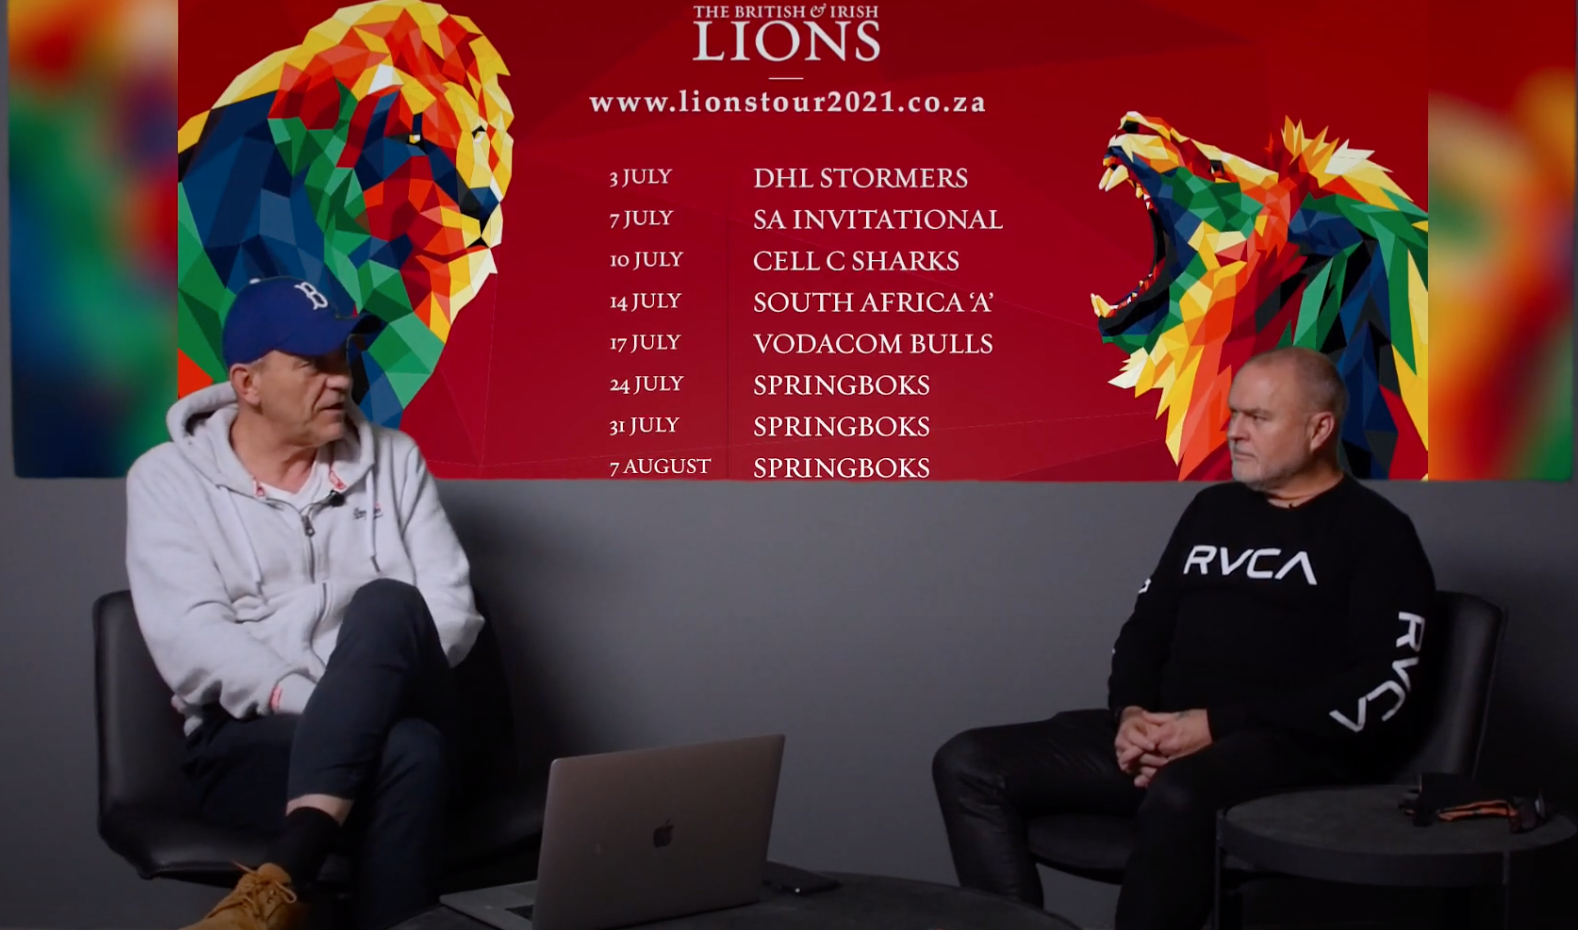 Money Man Show: British and Irish Lions will be a huge occasion!